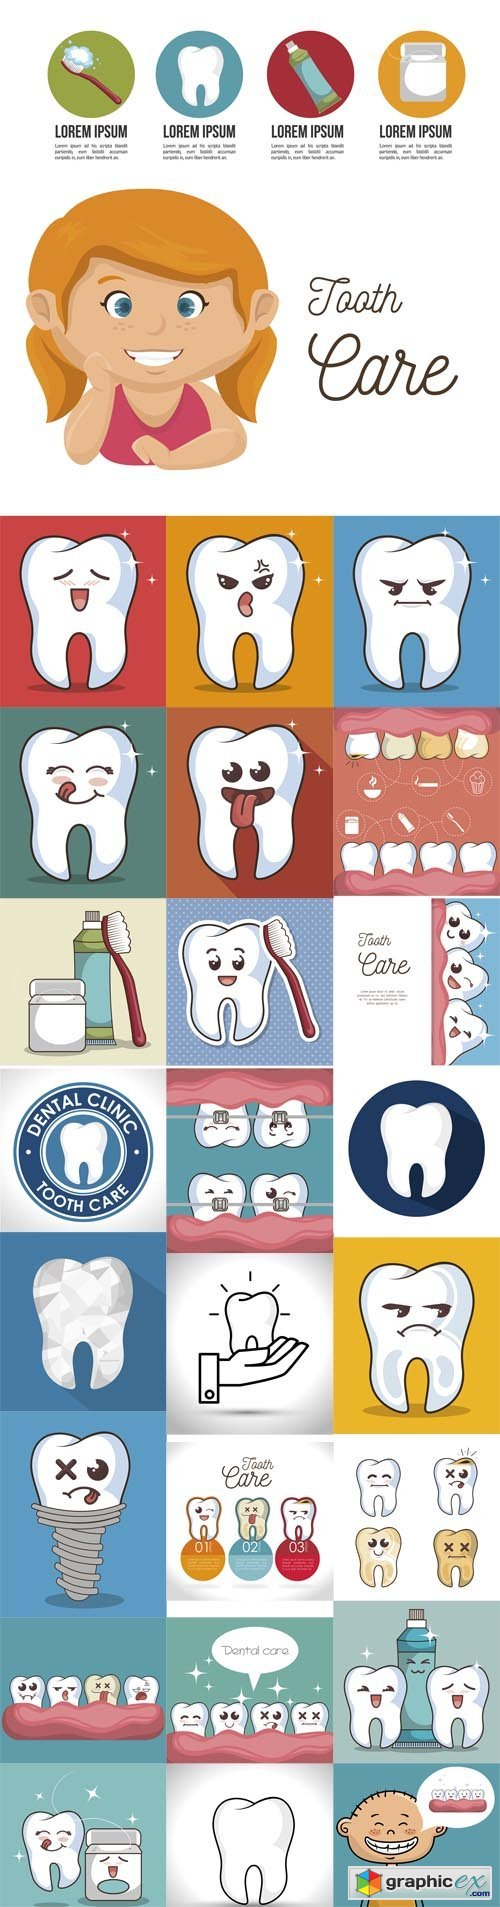 Human Tooth Character Icon Illustration Graphic